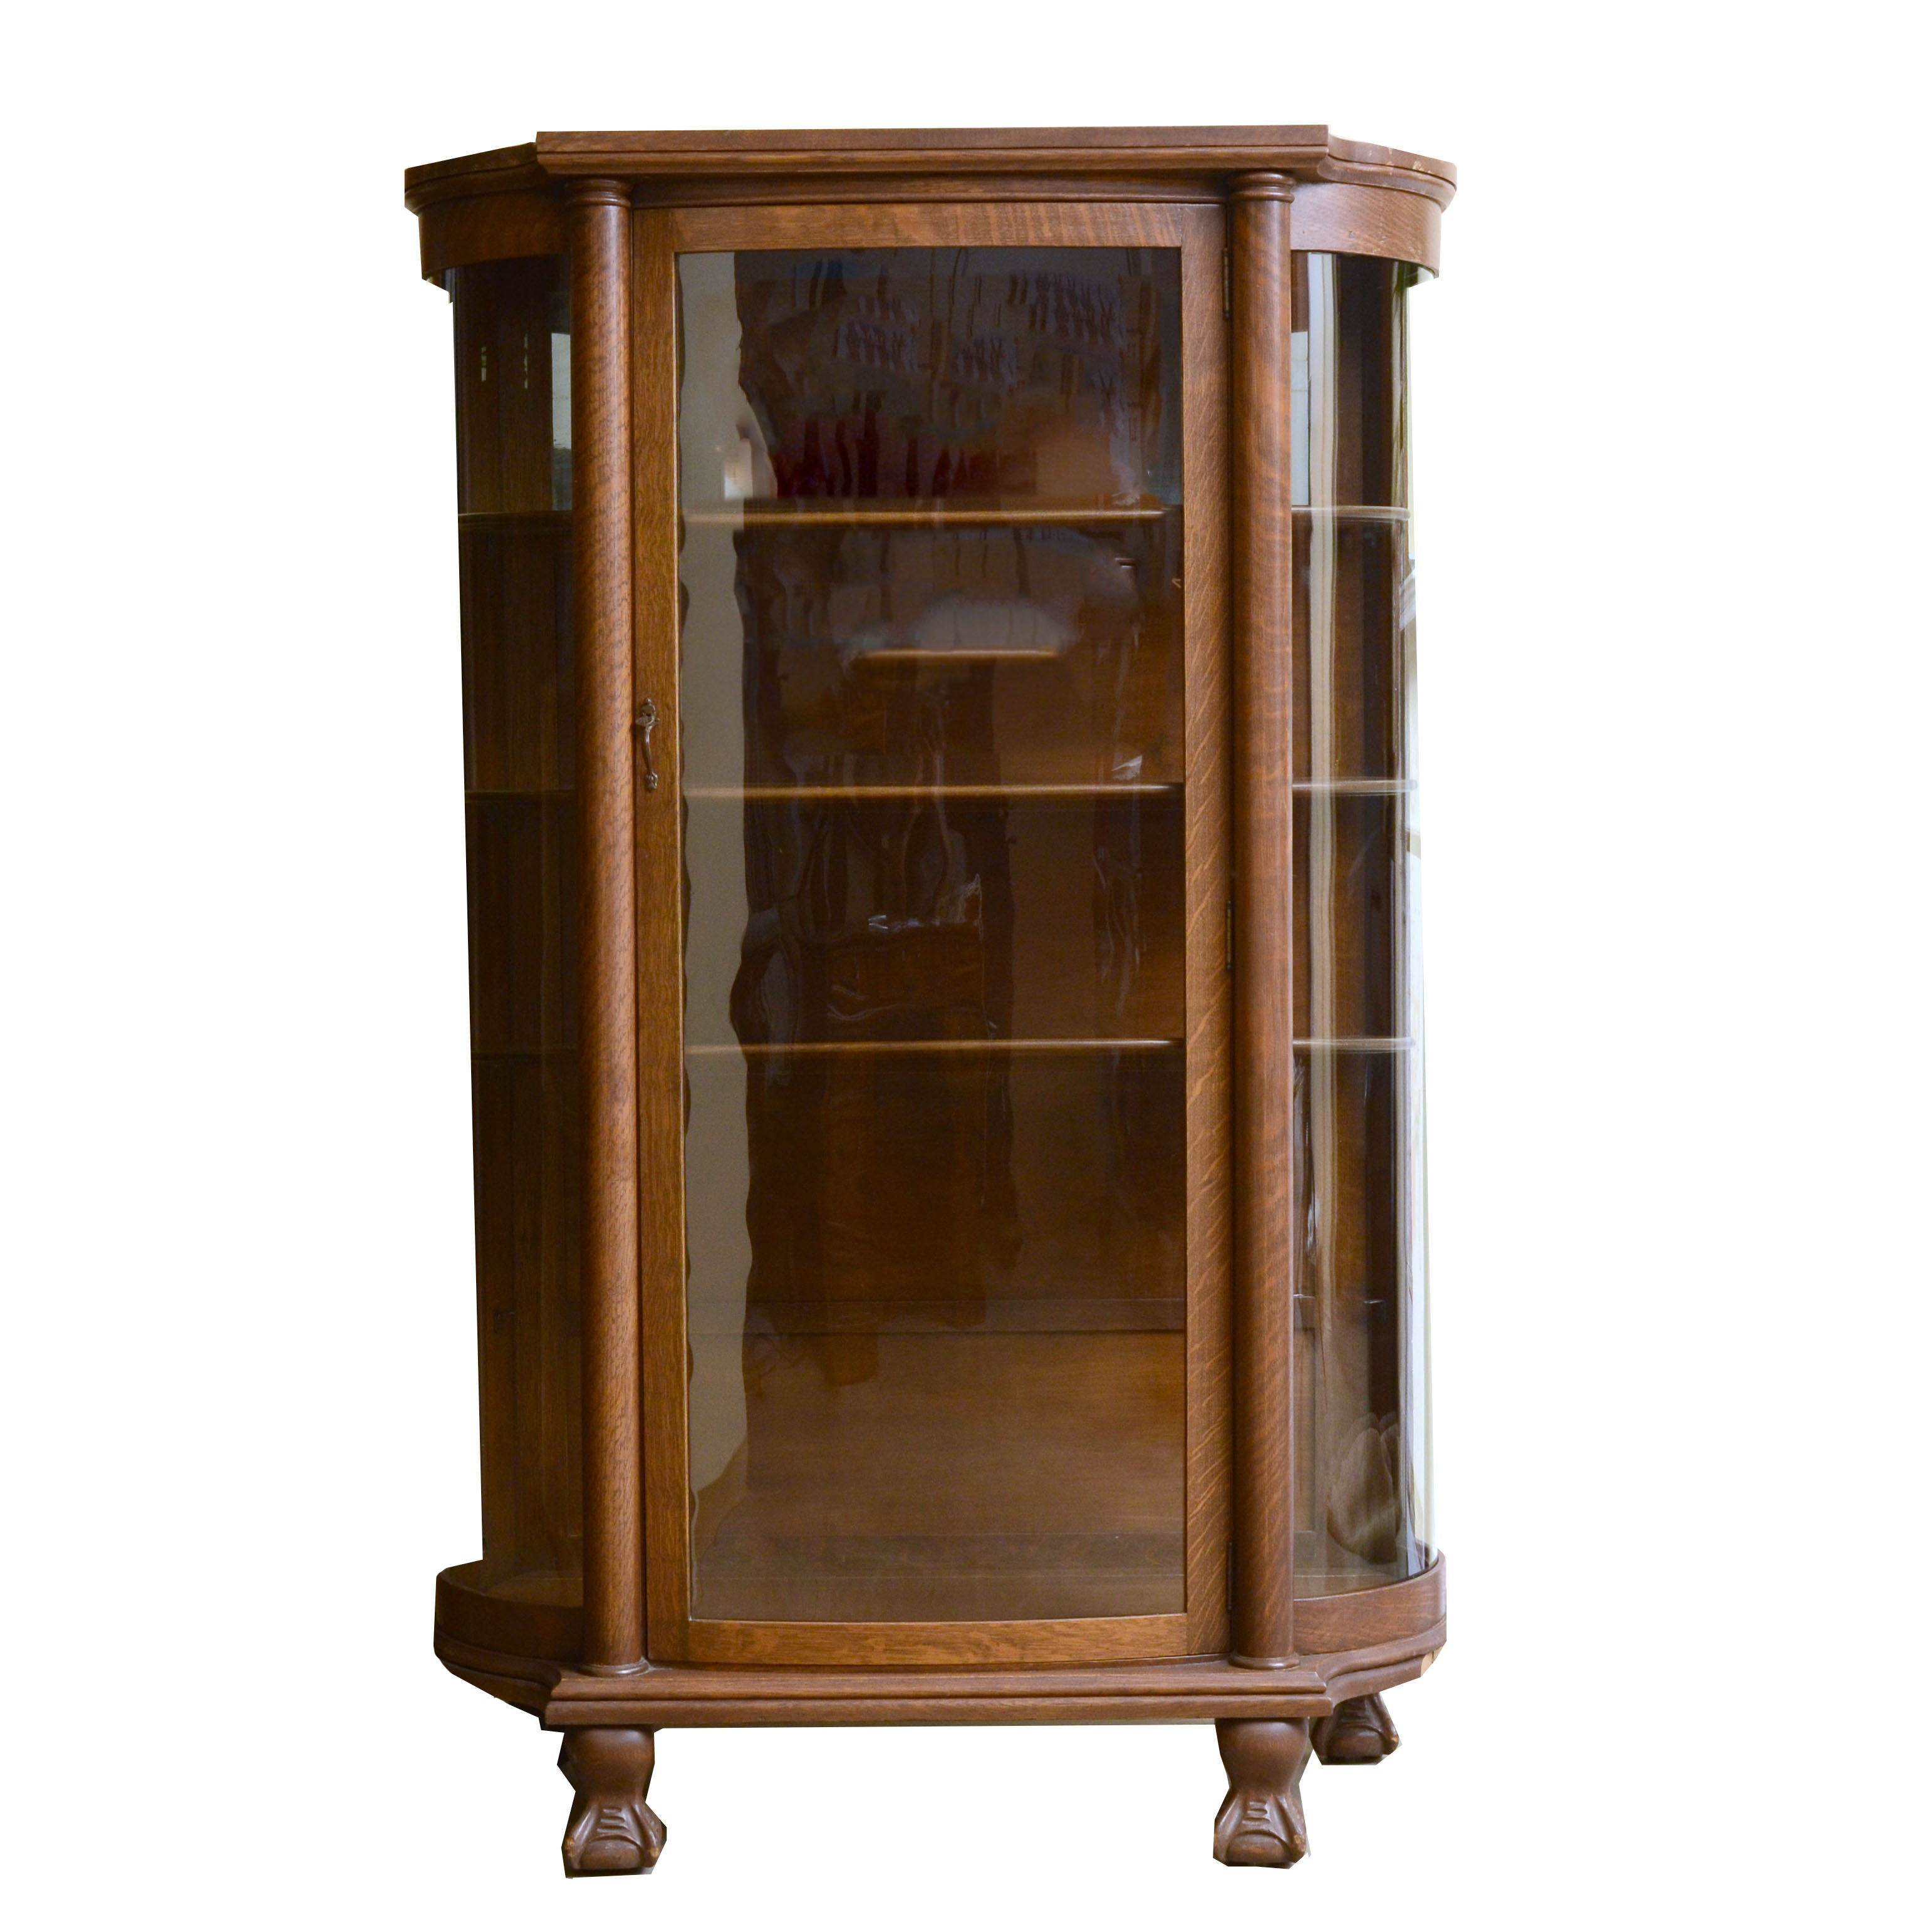 Early 20th Century Oak Curved Glass China Cupboard